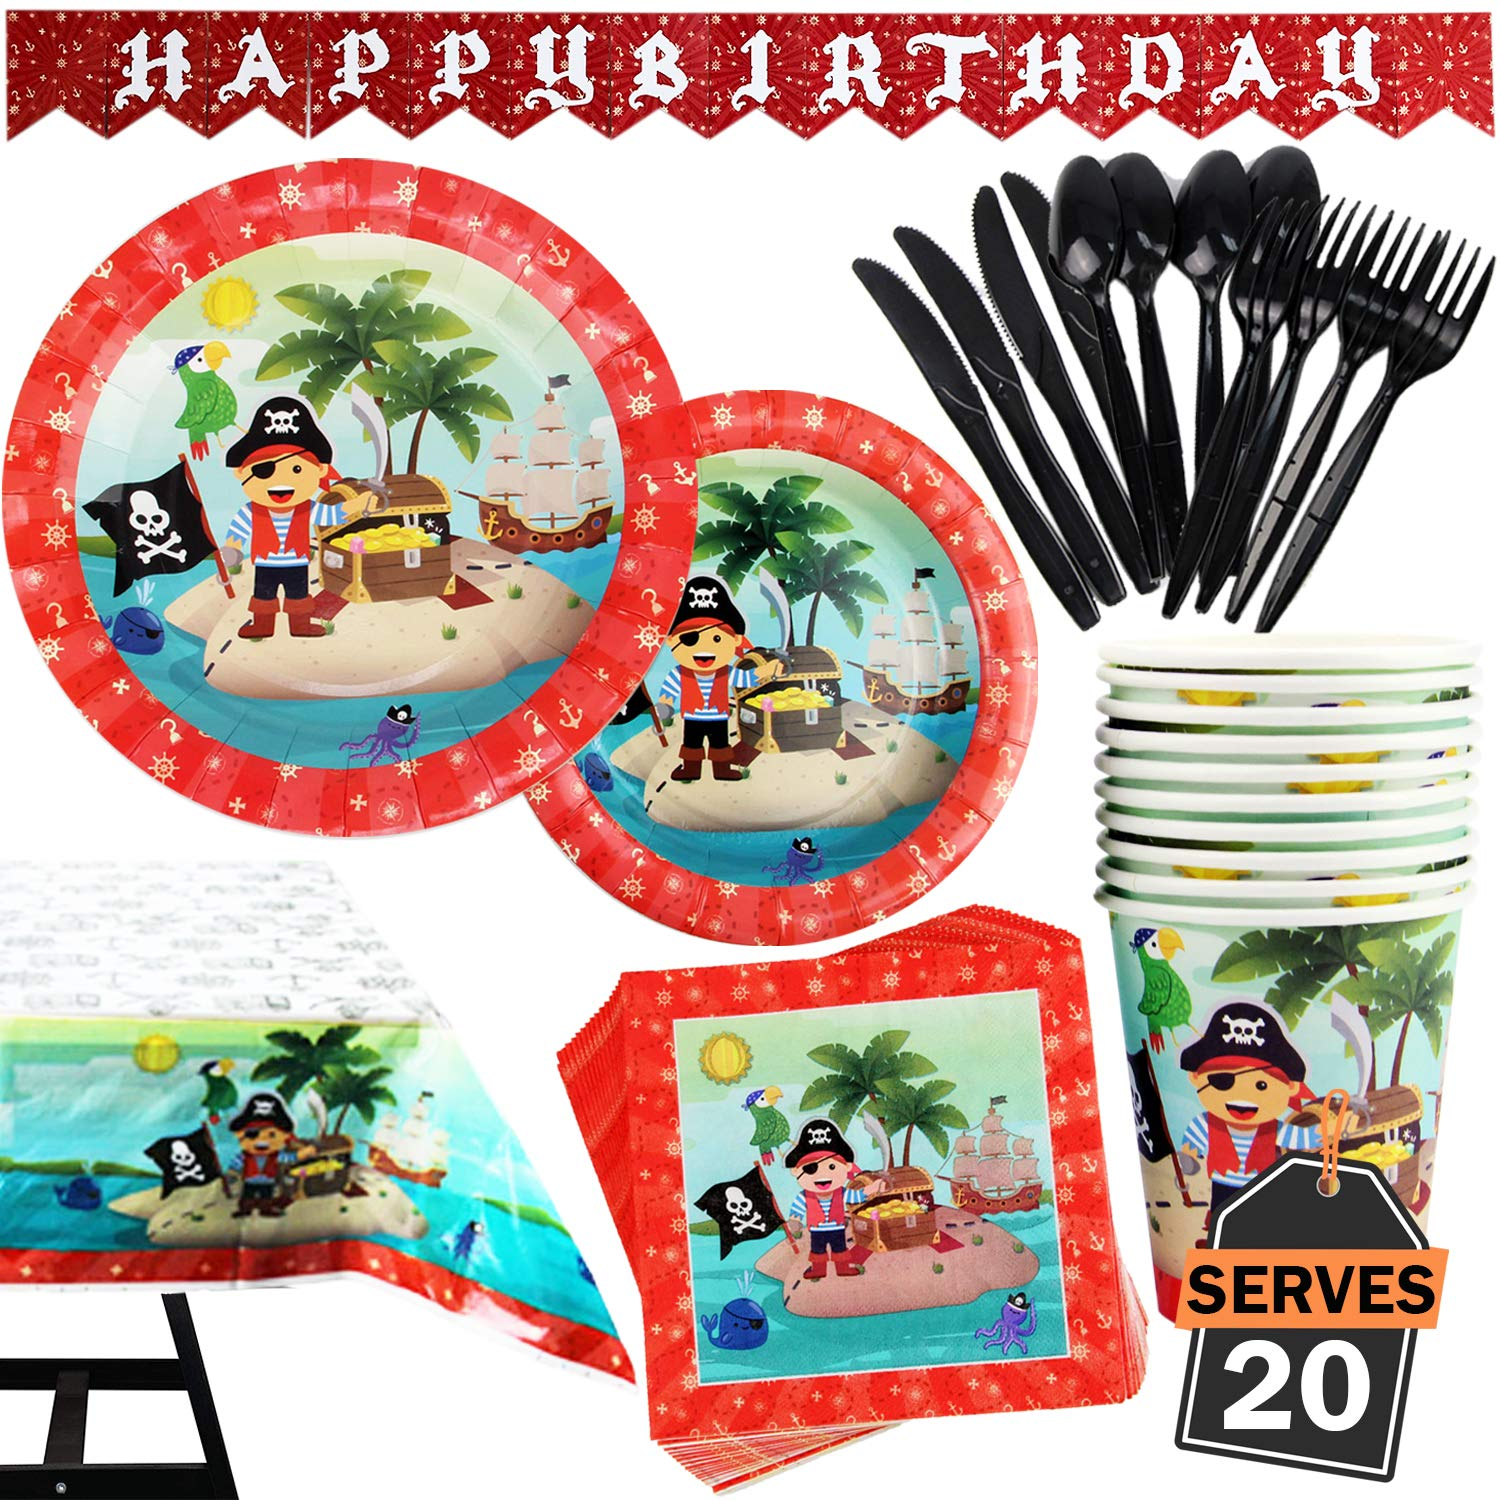 142 Piece Pirate Party Supplies Set Including Banner, Plates, Cups, Napkins, Tablecloth, Spoon, Forks, and Knives, Serves 20